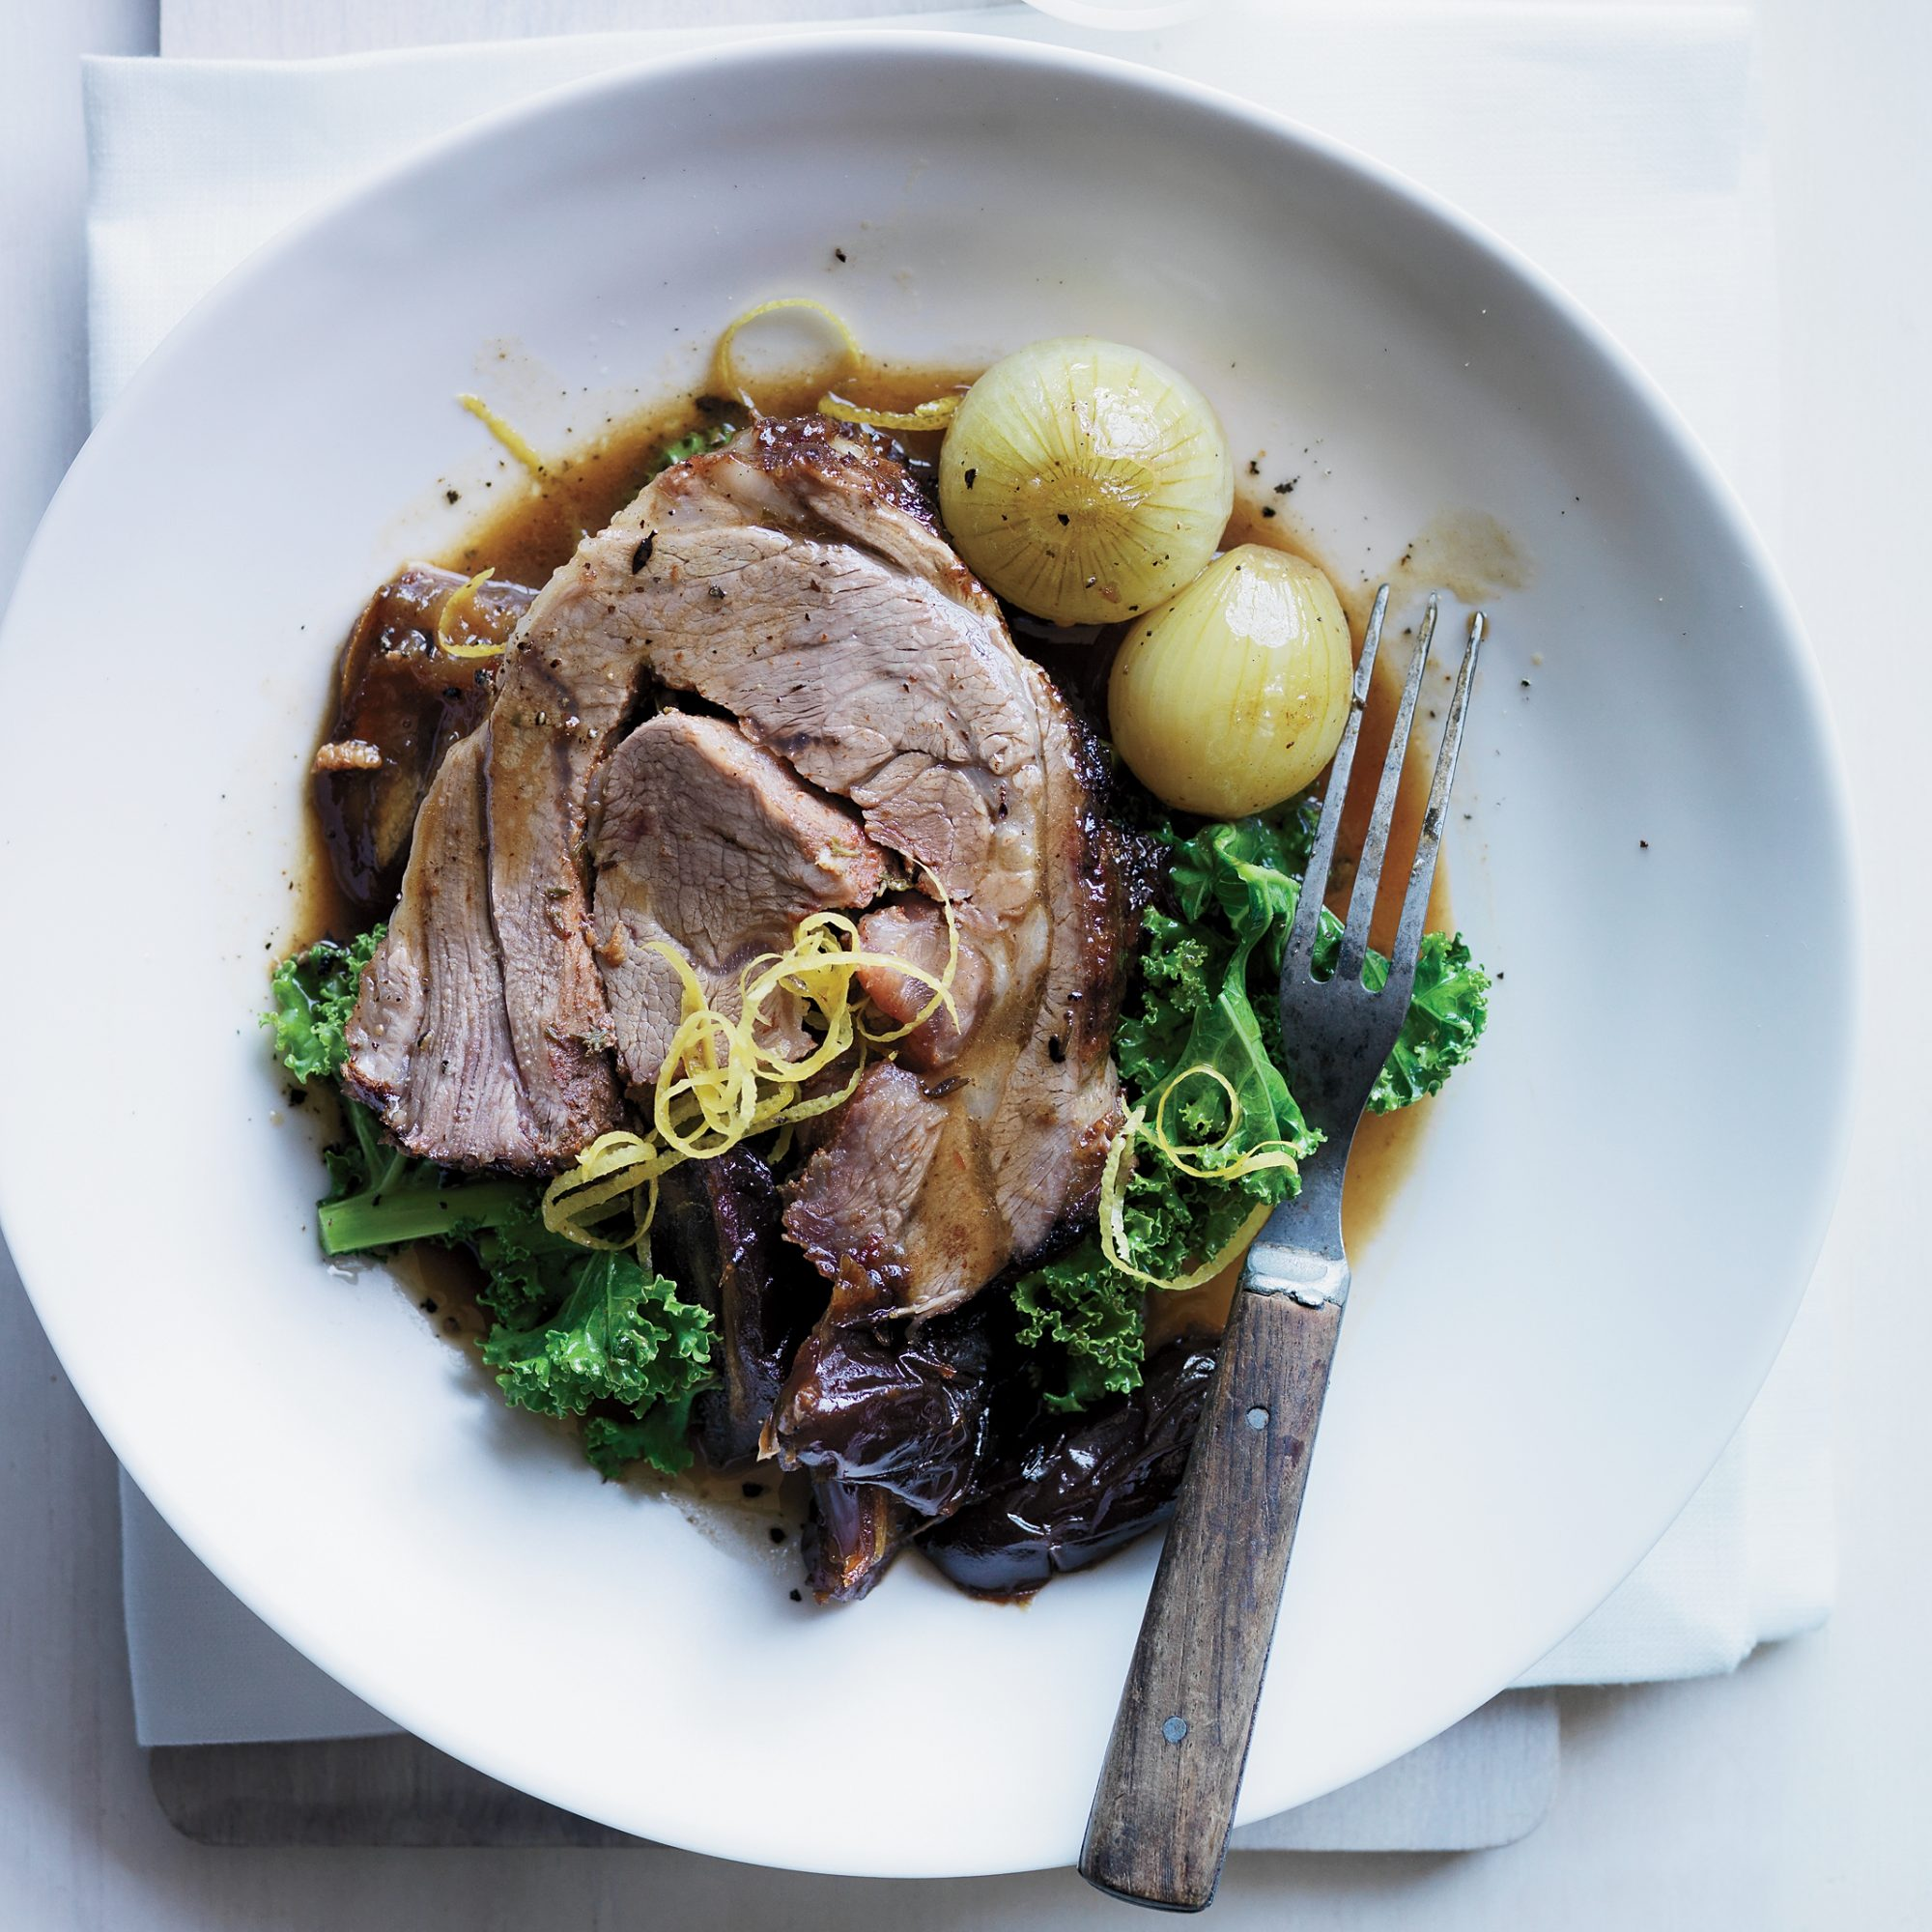 Slow-Cooked Lamb With Cipolini Dates, Kale and Almonds